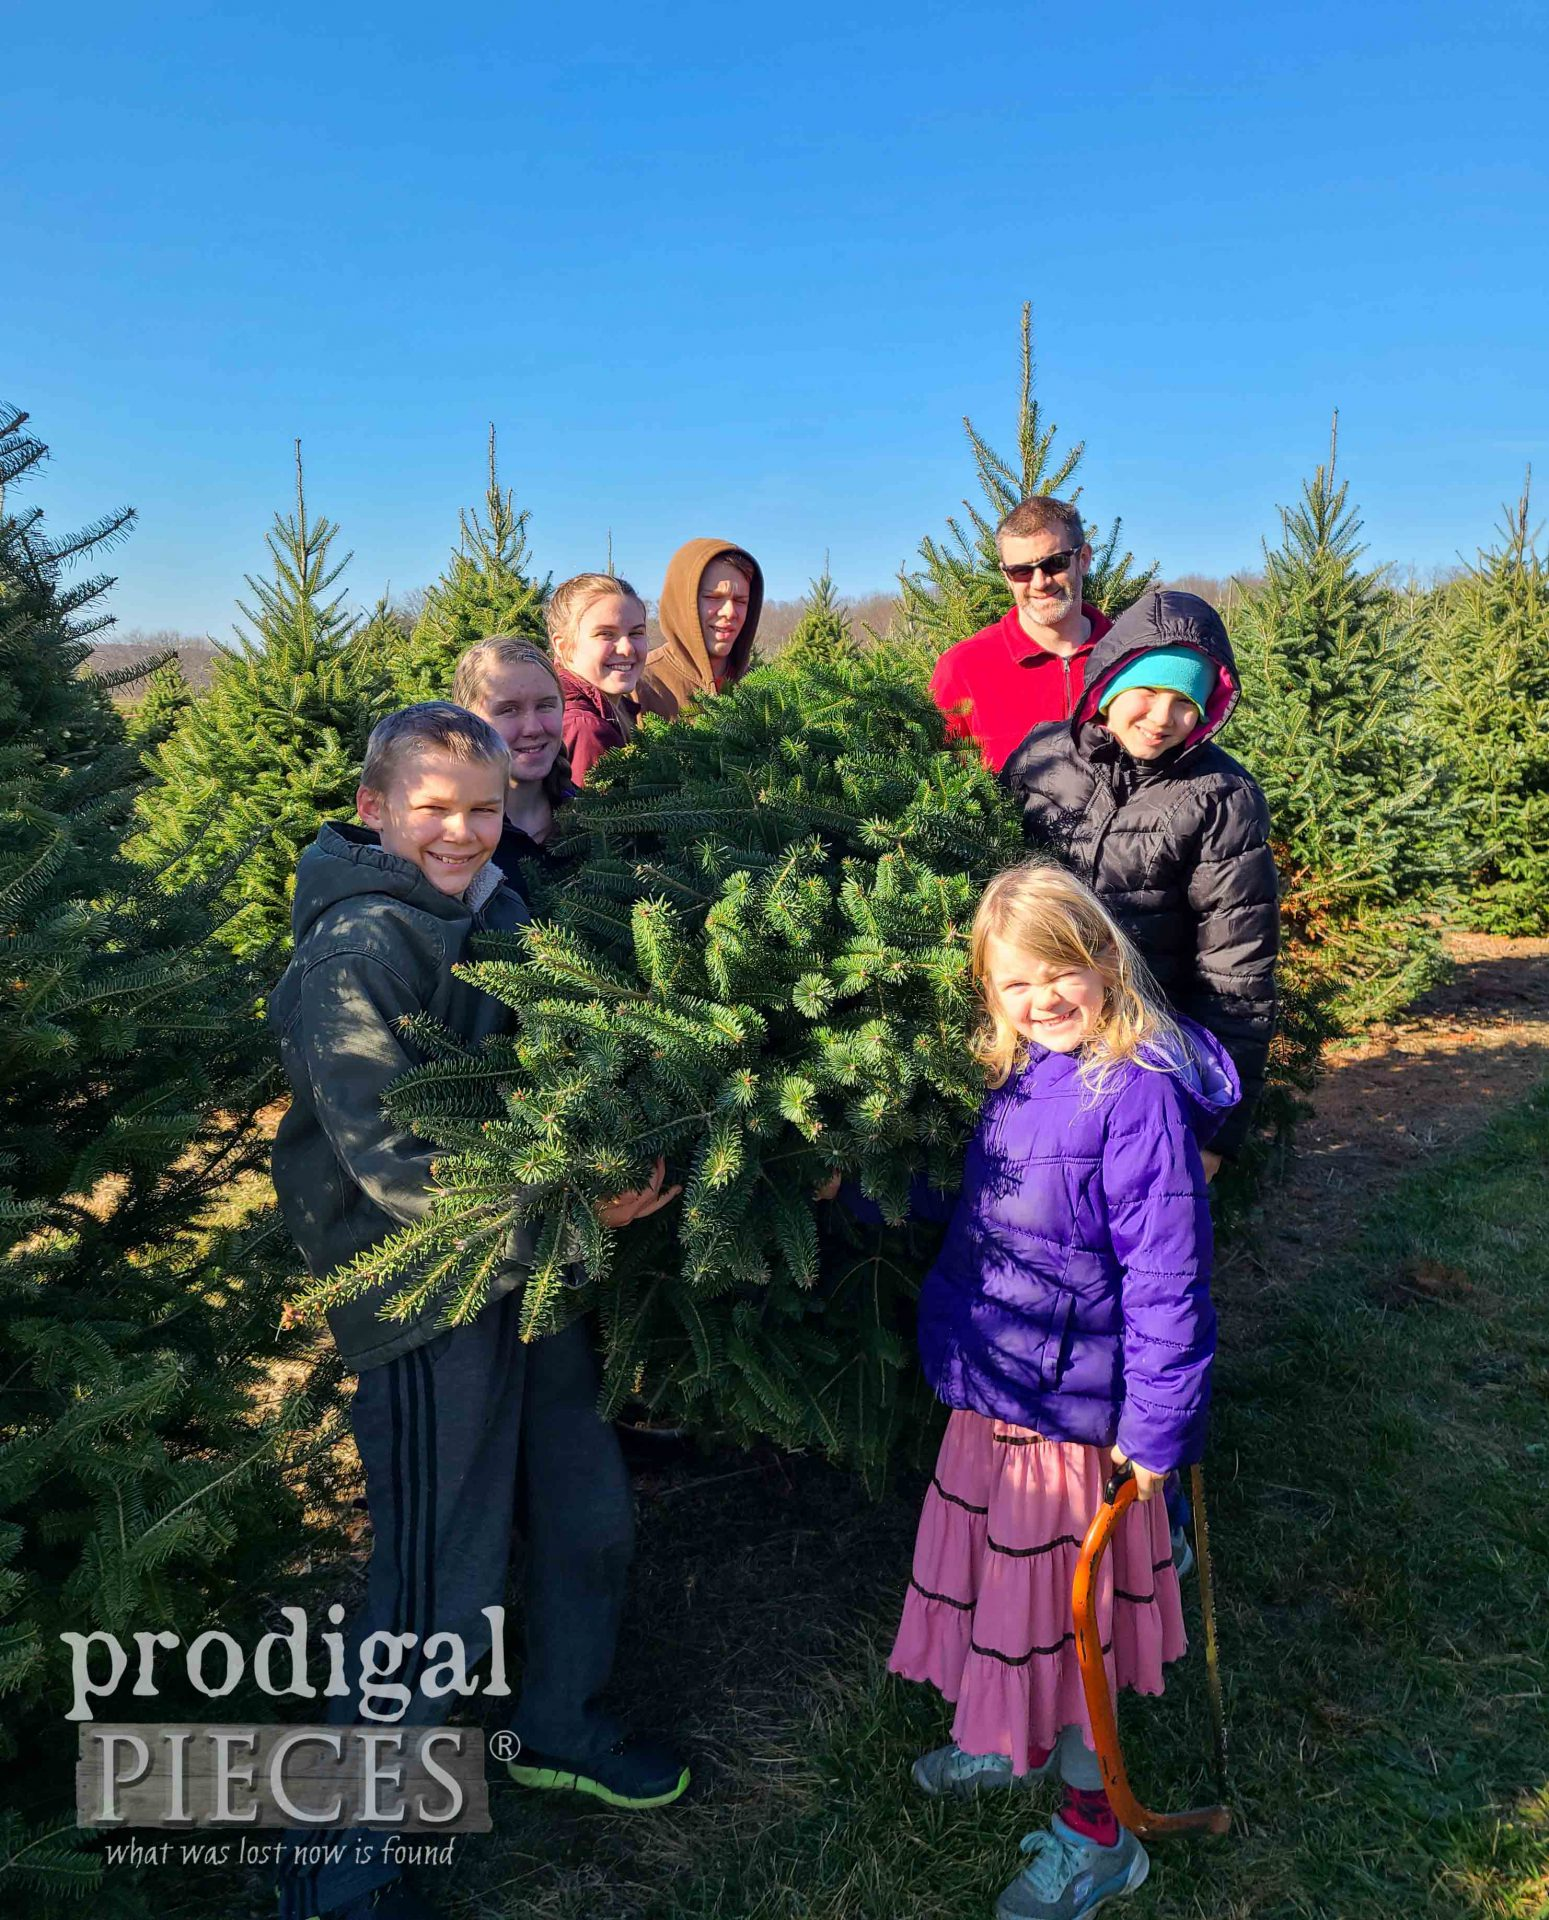 Getting Fresh Christmas Tree | prodigalpieces.com #prodigalpieces